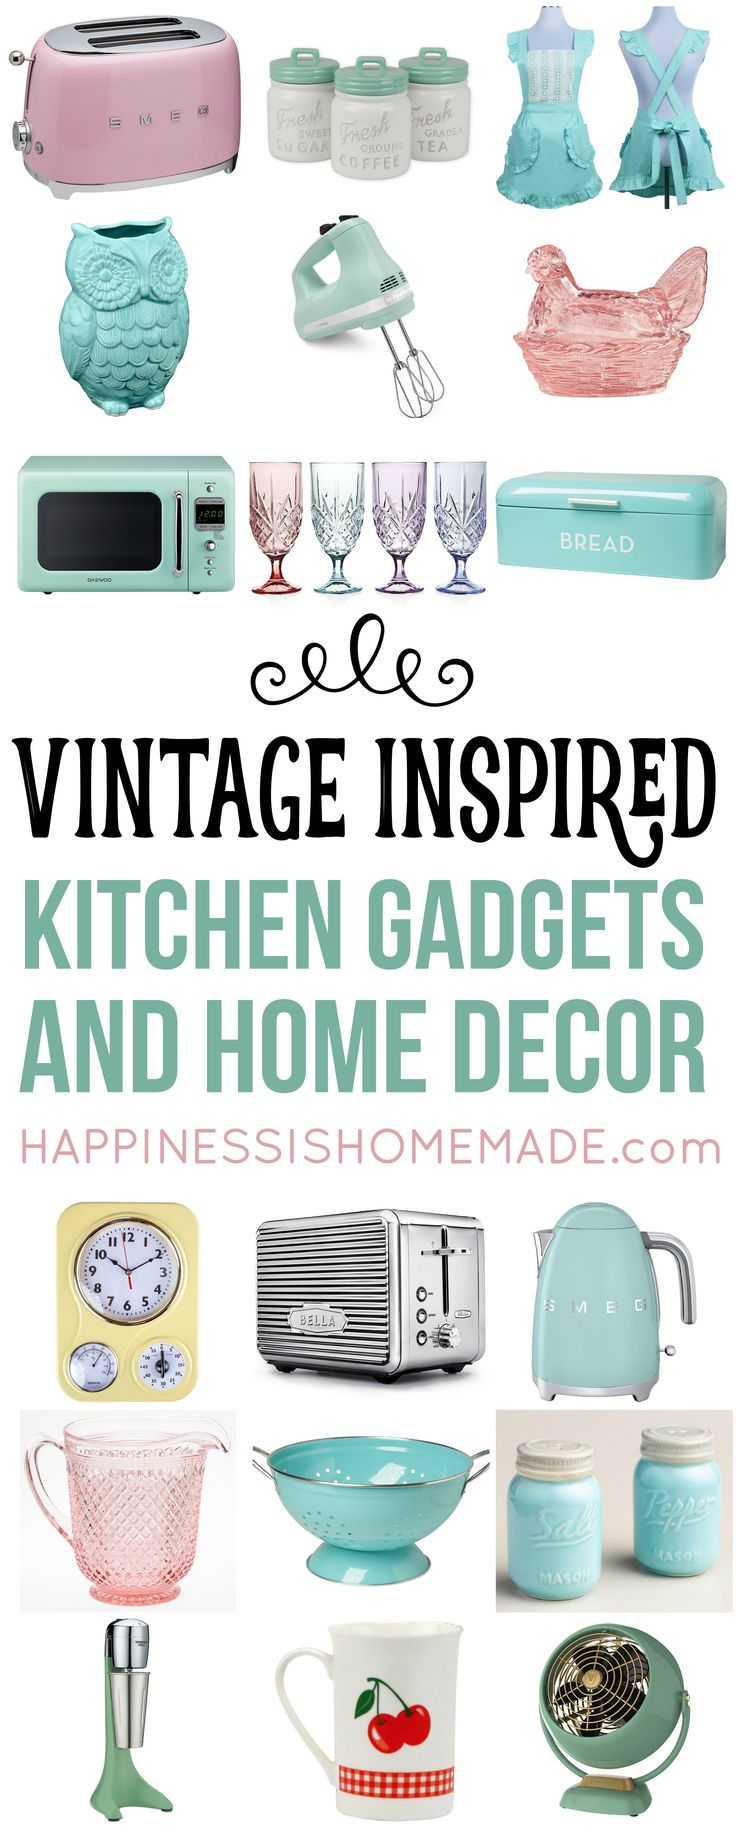 Home products company decorating ideas news amp media download contact - Nostalgic Vintage Inspired Kitchen Decor And Gadgets That Are Perfect For Your Kitschy Retro Revival